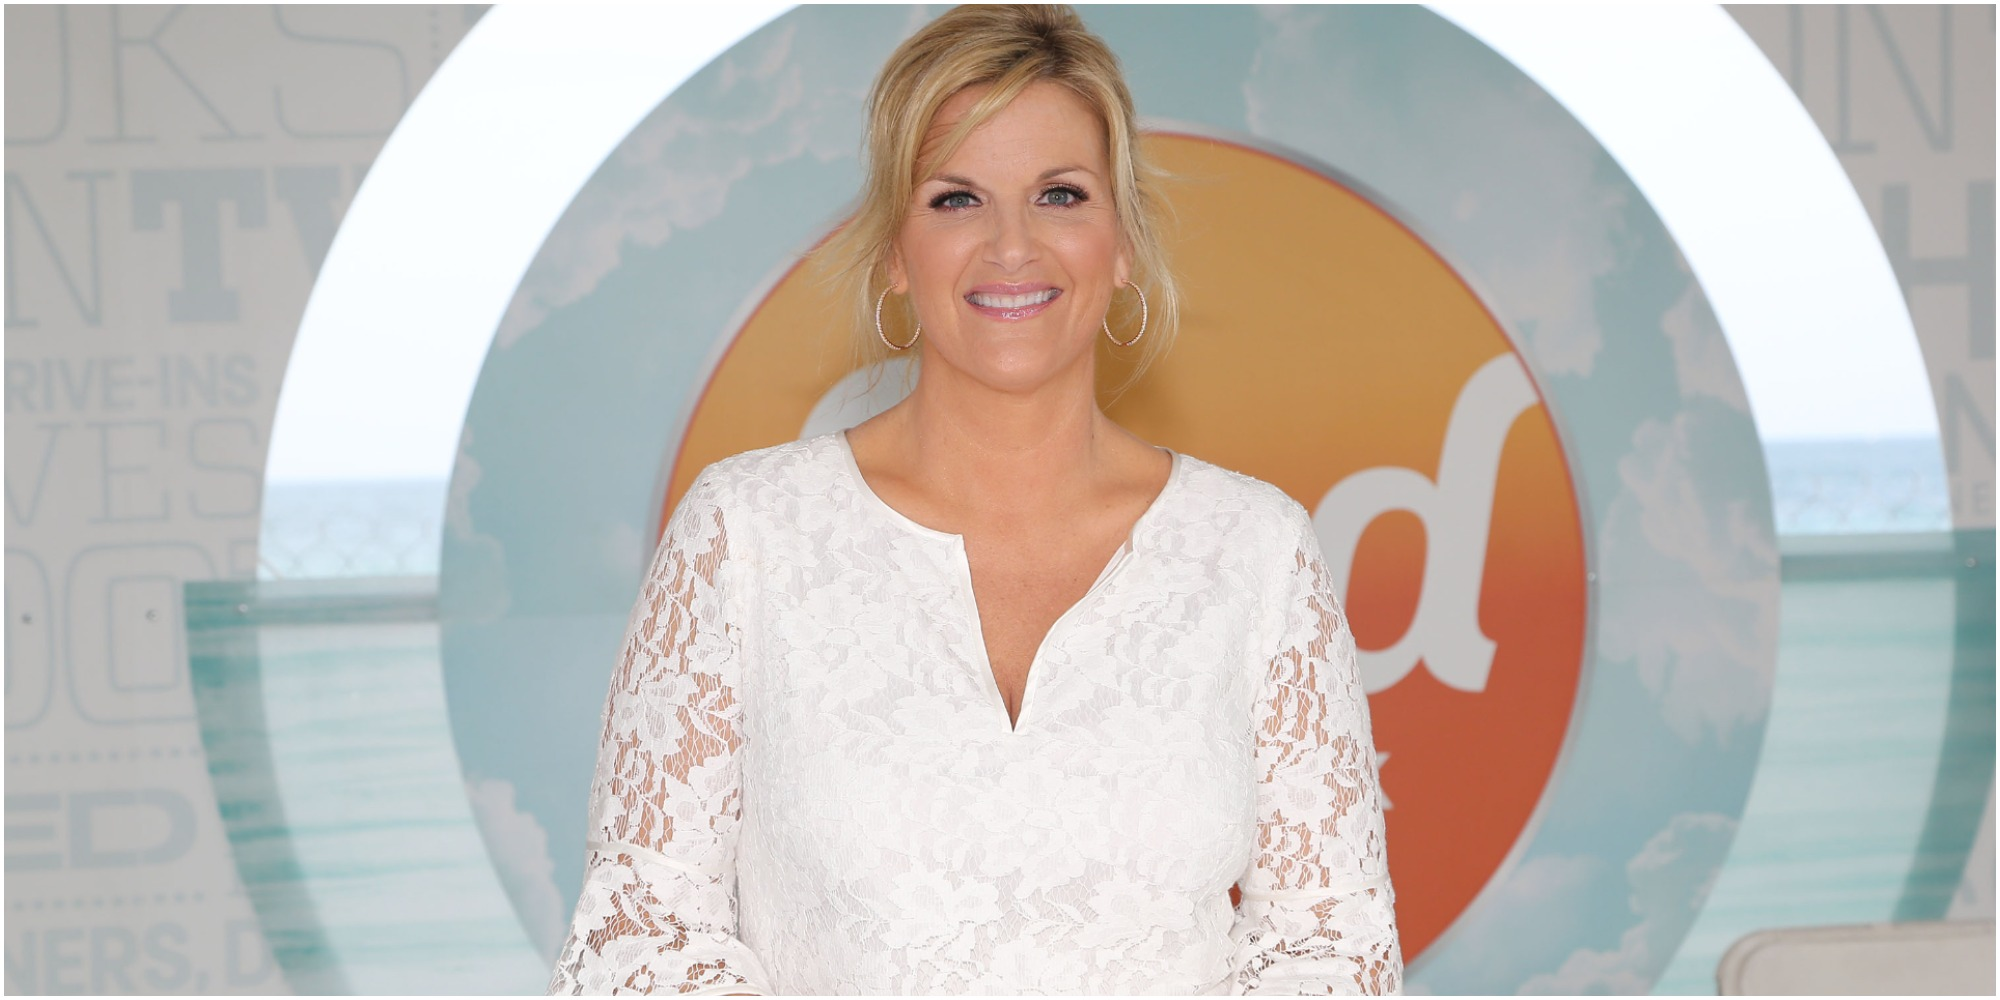 Trisha Yearwood poses in front of the Food Network logo.